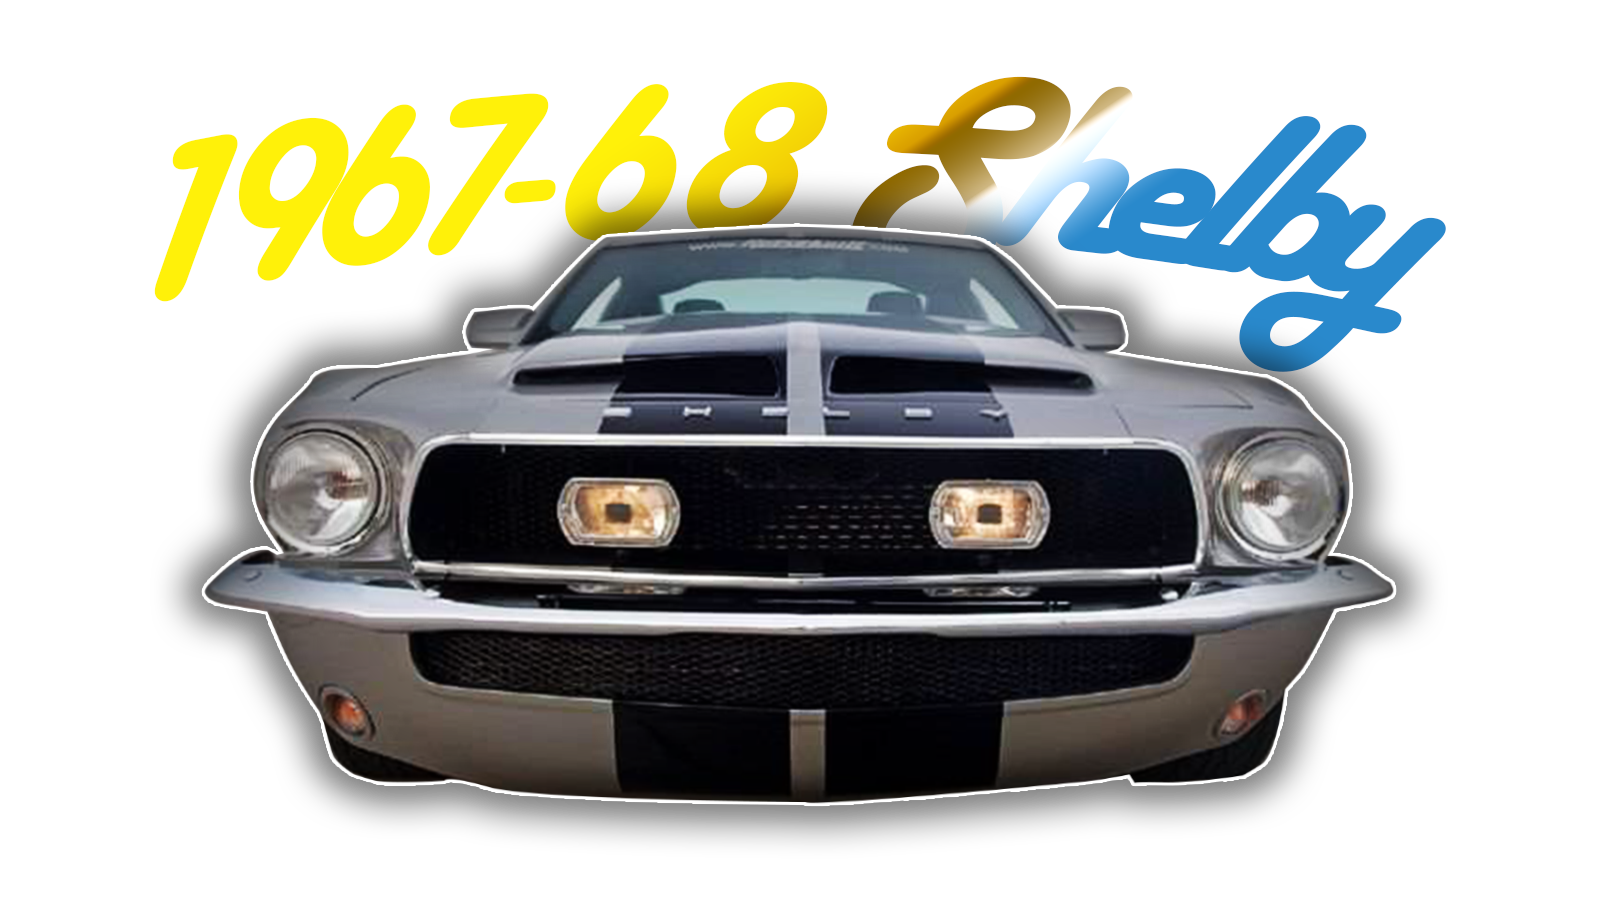 1967-68 Shelby